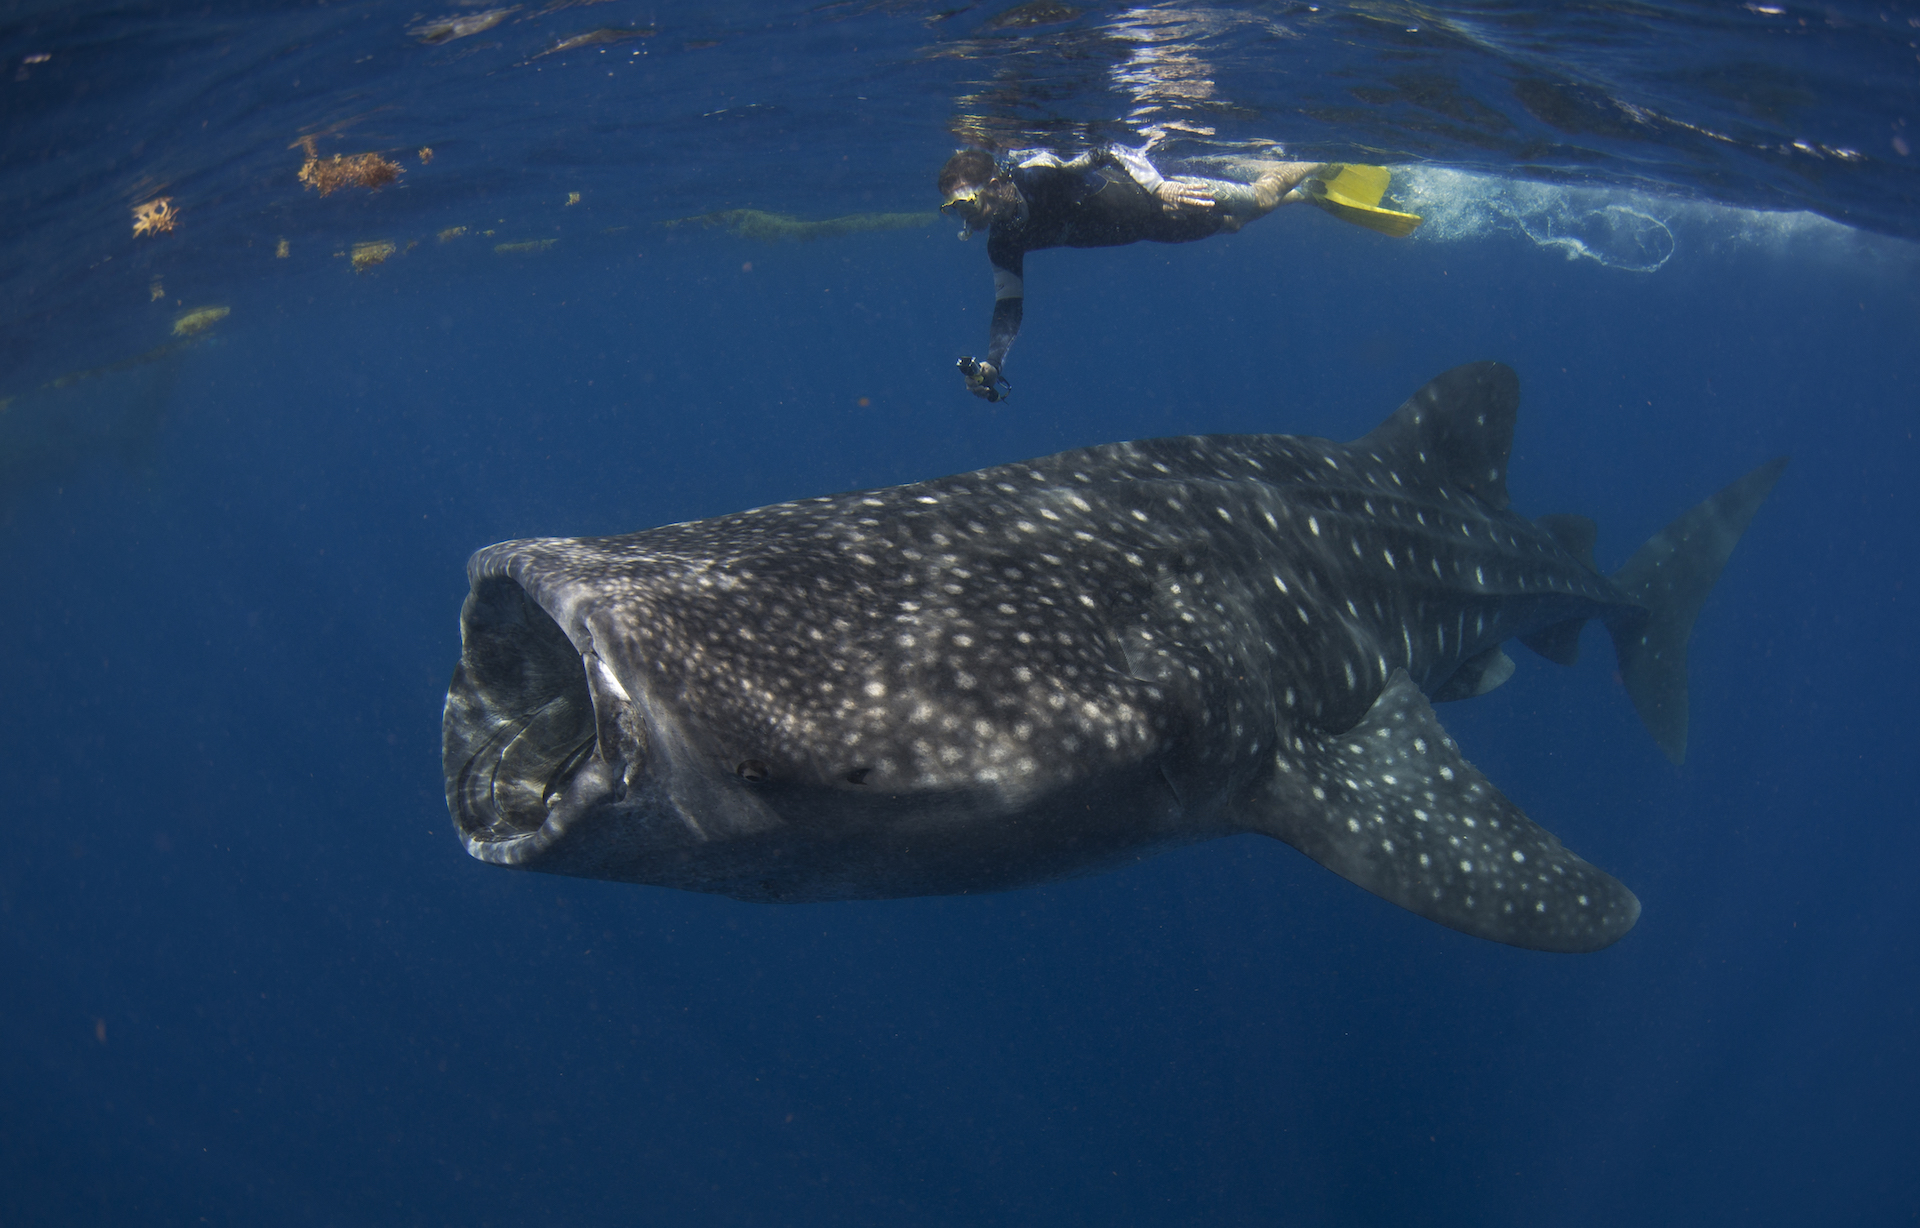 Just one hour by boat north of Isla Mujeres, hundreds of whale sharks congregate between June and September each year. Visitors are allowed to snorkel and dive with these gentle giants. Lucky visitors may be able to see up to 20 whale sharks in a single day.